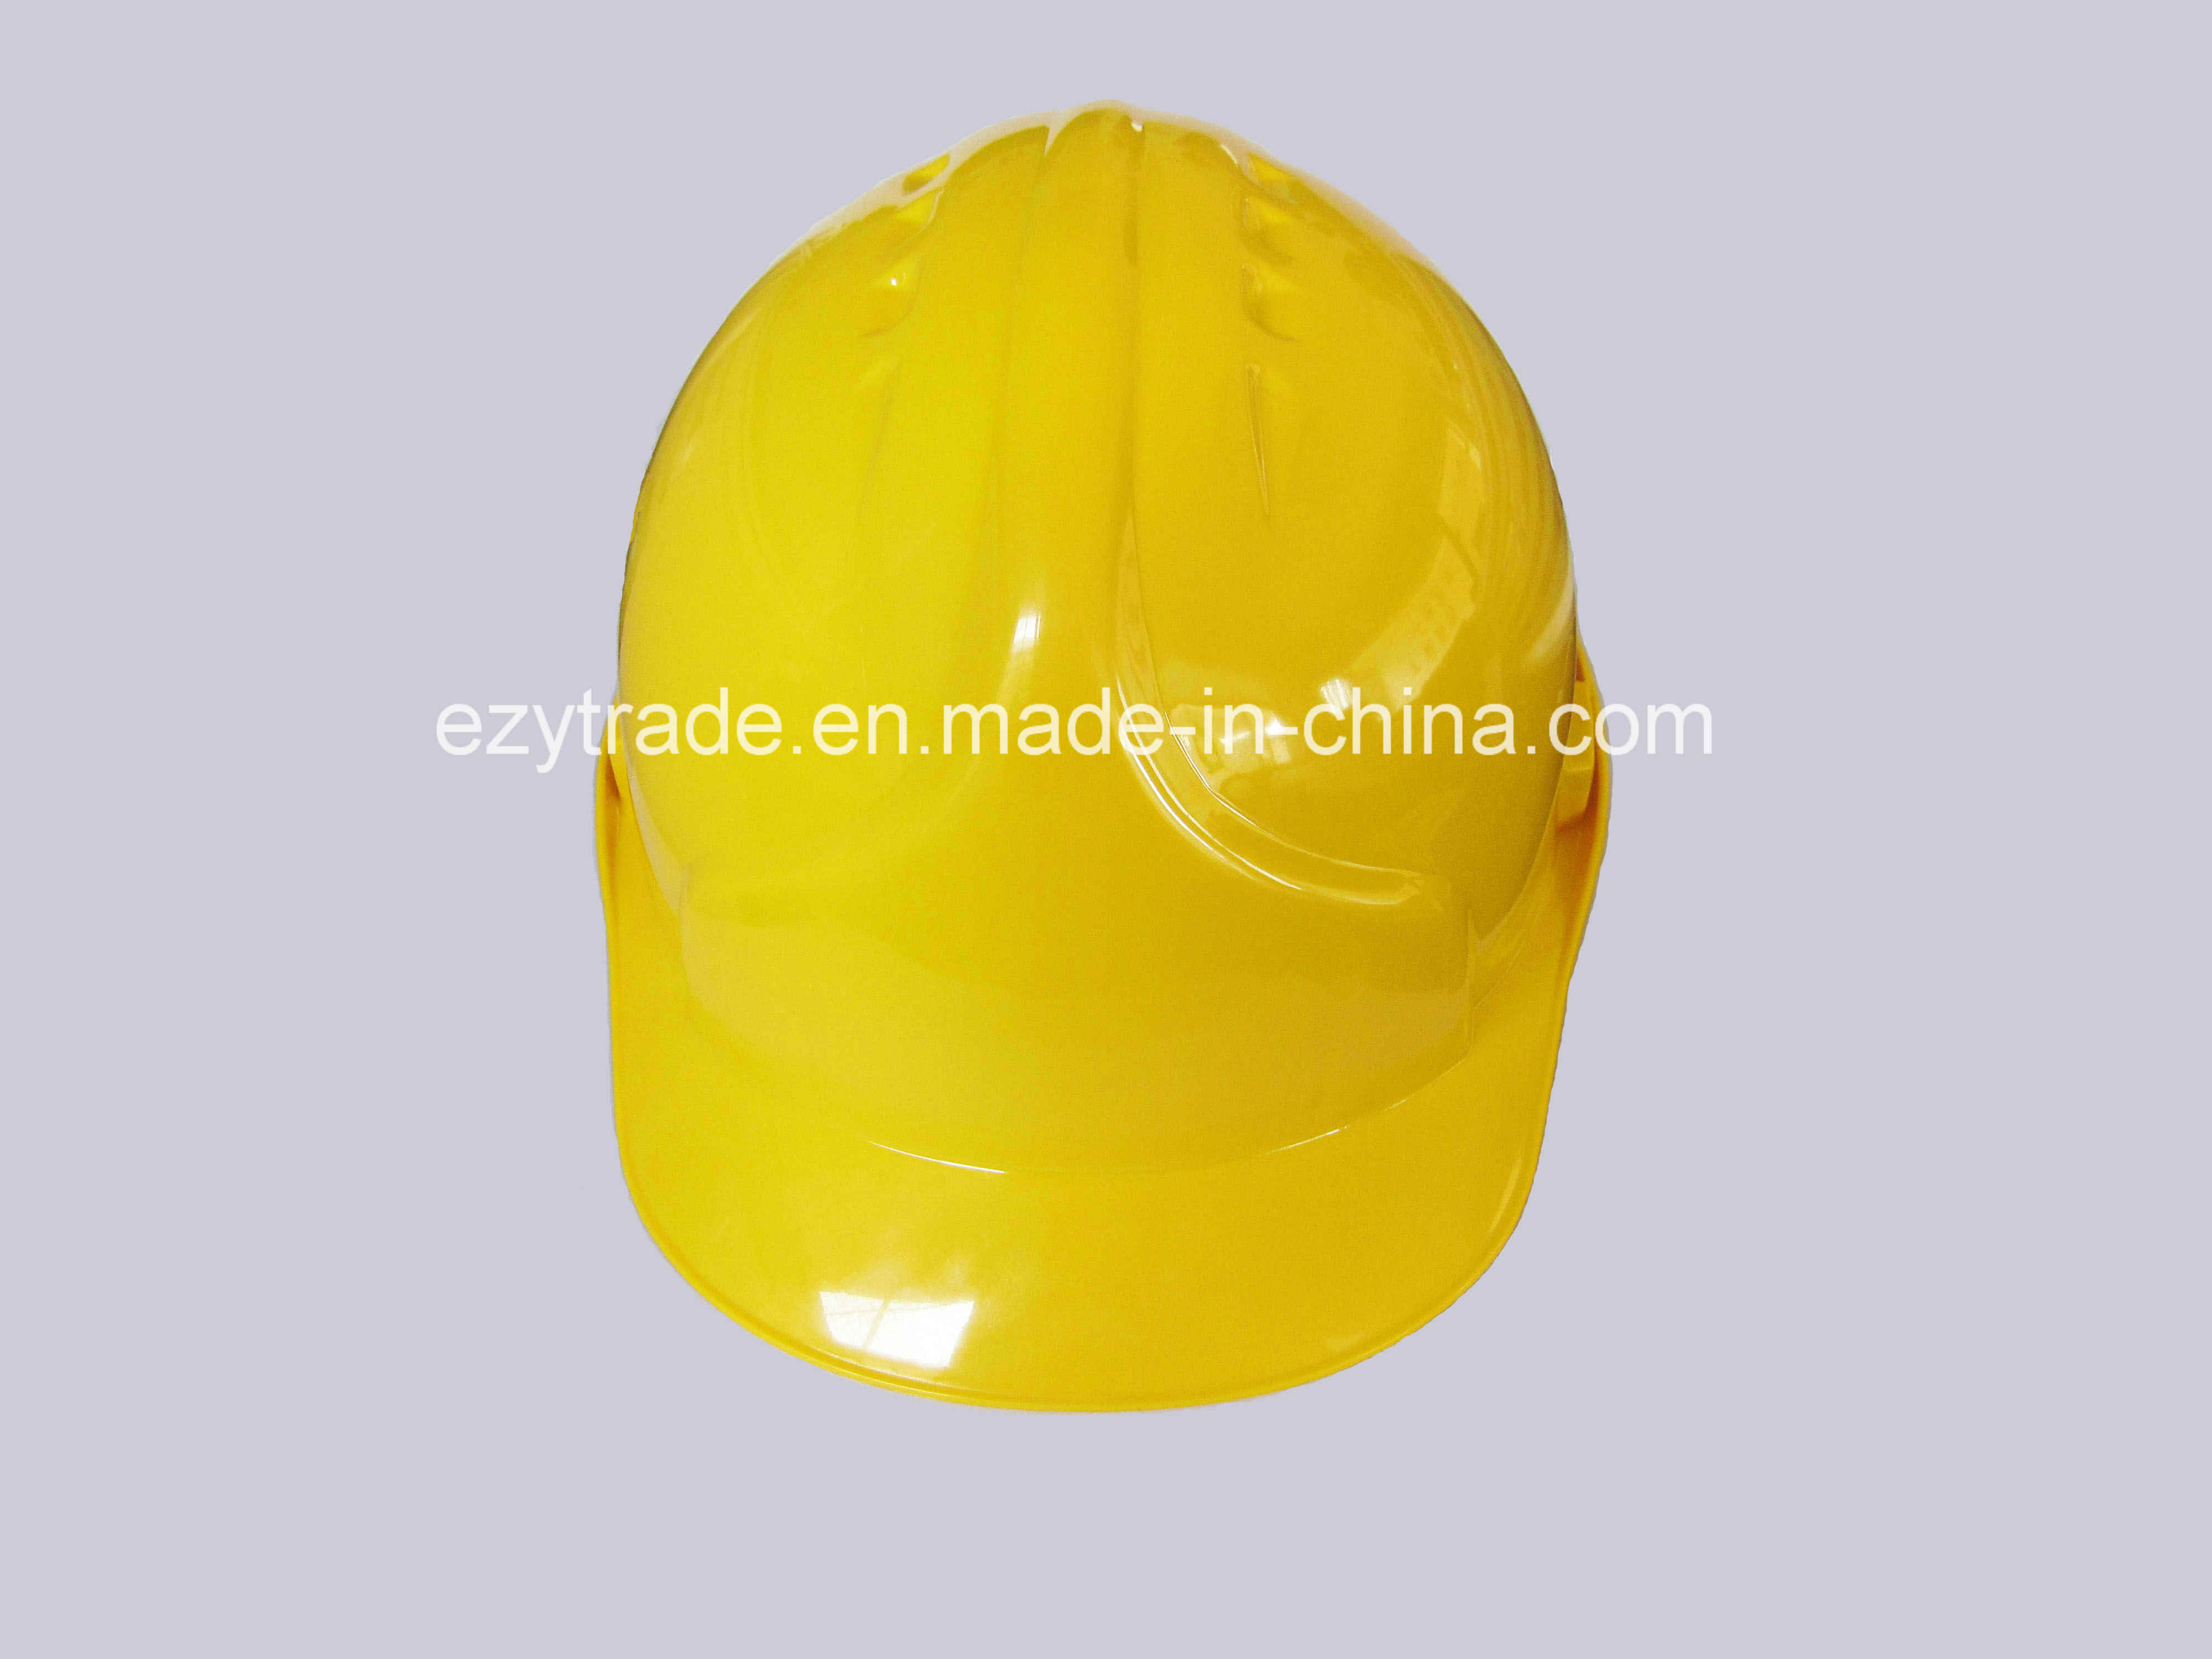 High Quality Construction Industrial Safety Helmet